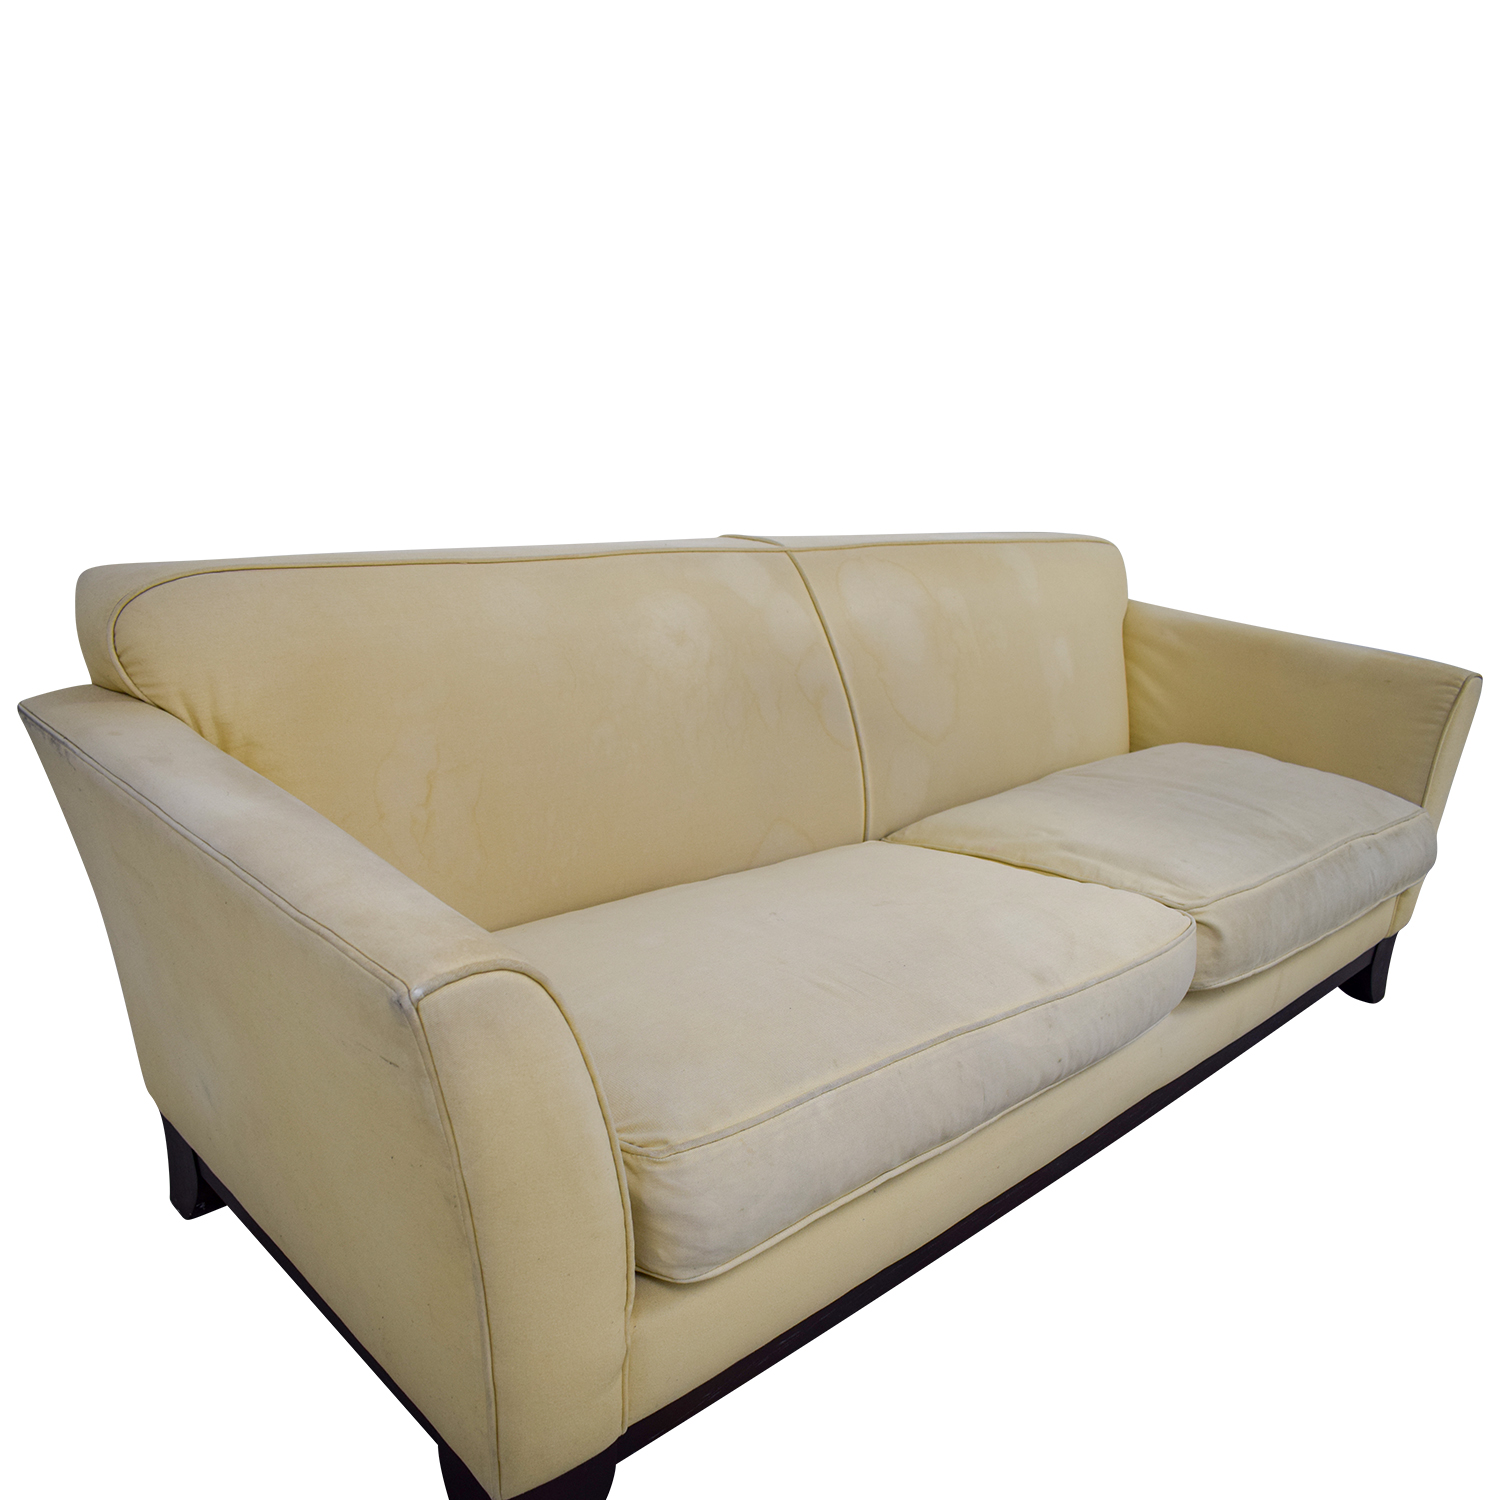 shop Pottery Barn Beige Upholstered Two-Cushion Sofa Pottery Barn Classic Sofas